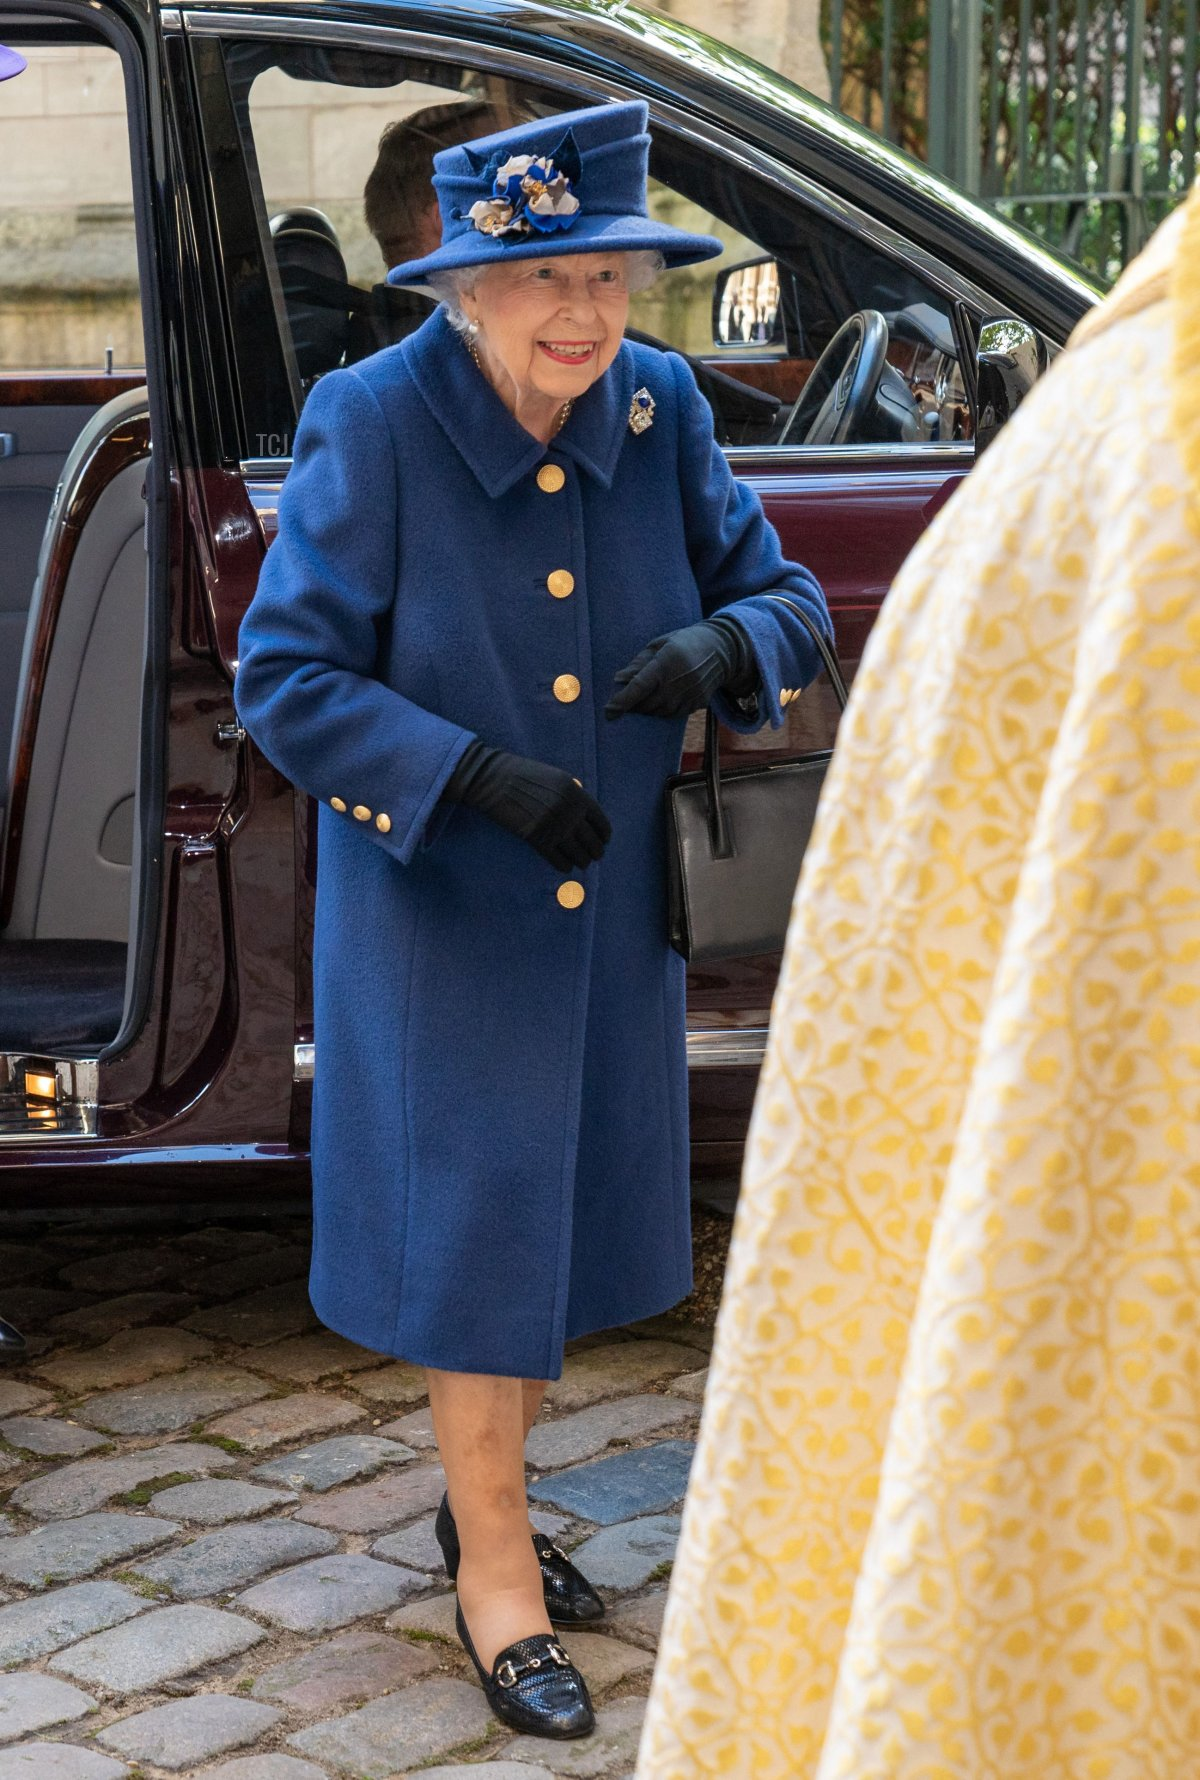 Britain's Queen Elizabeth II arrives to attend a Service of Thanksgiving to mark the Centenary of the Royal British Legion at Westminster Abbey in London on October 12, 2021